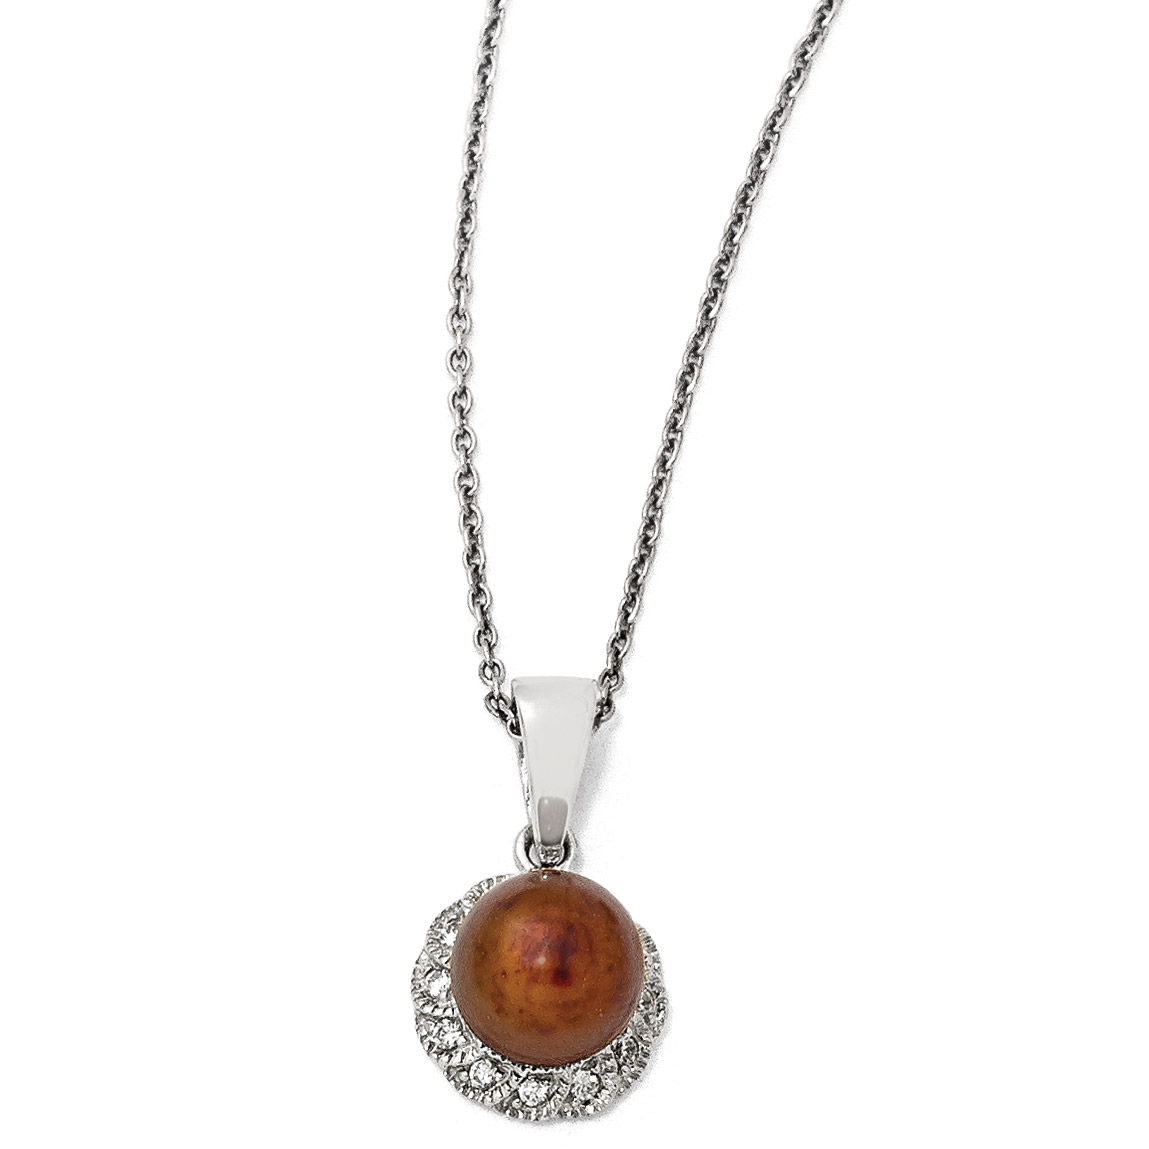 Cheryl M Sterling Silver CZ /& White Freshwater Cultured Pearl Pendant Necklace 18